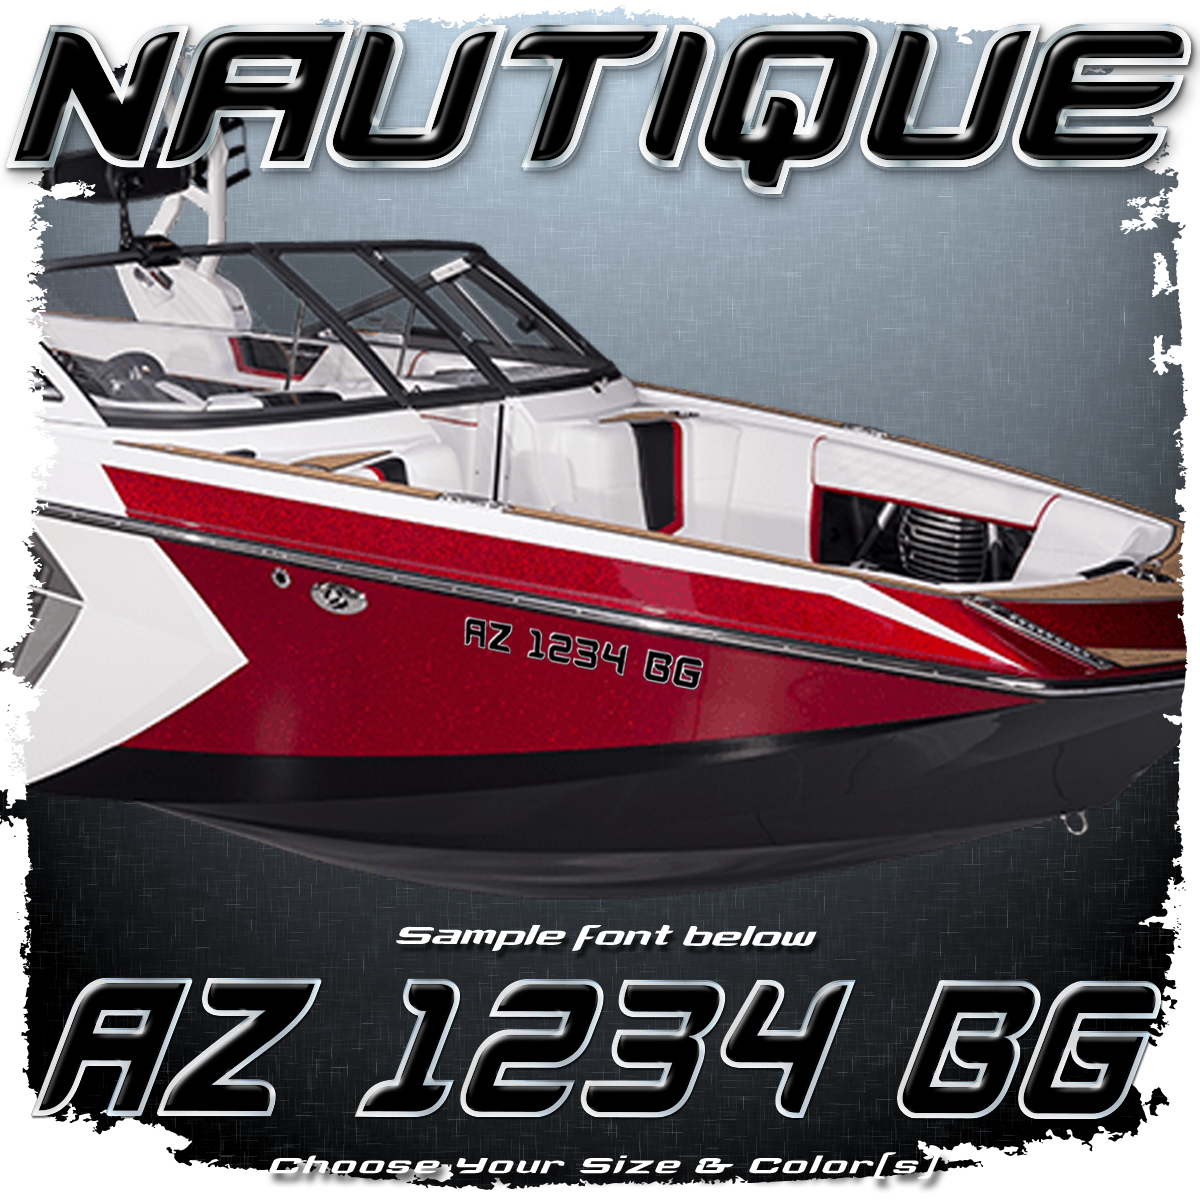 Nautique Registration (2 included), Choose Your Own Colors